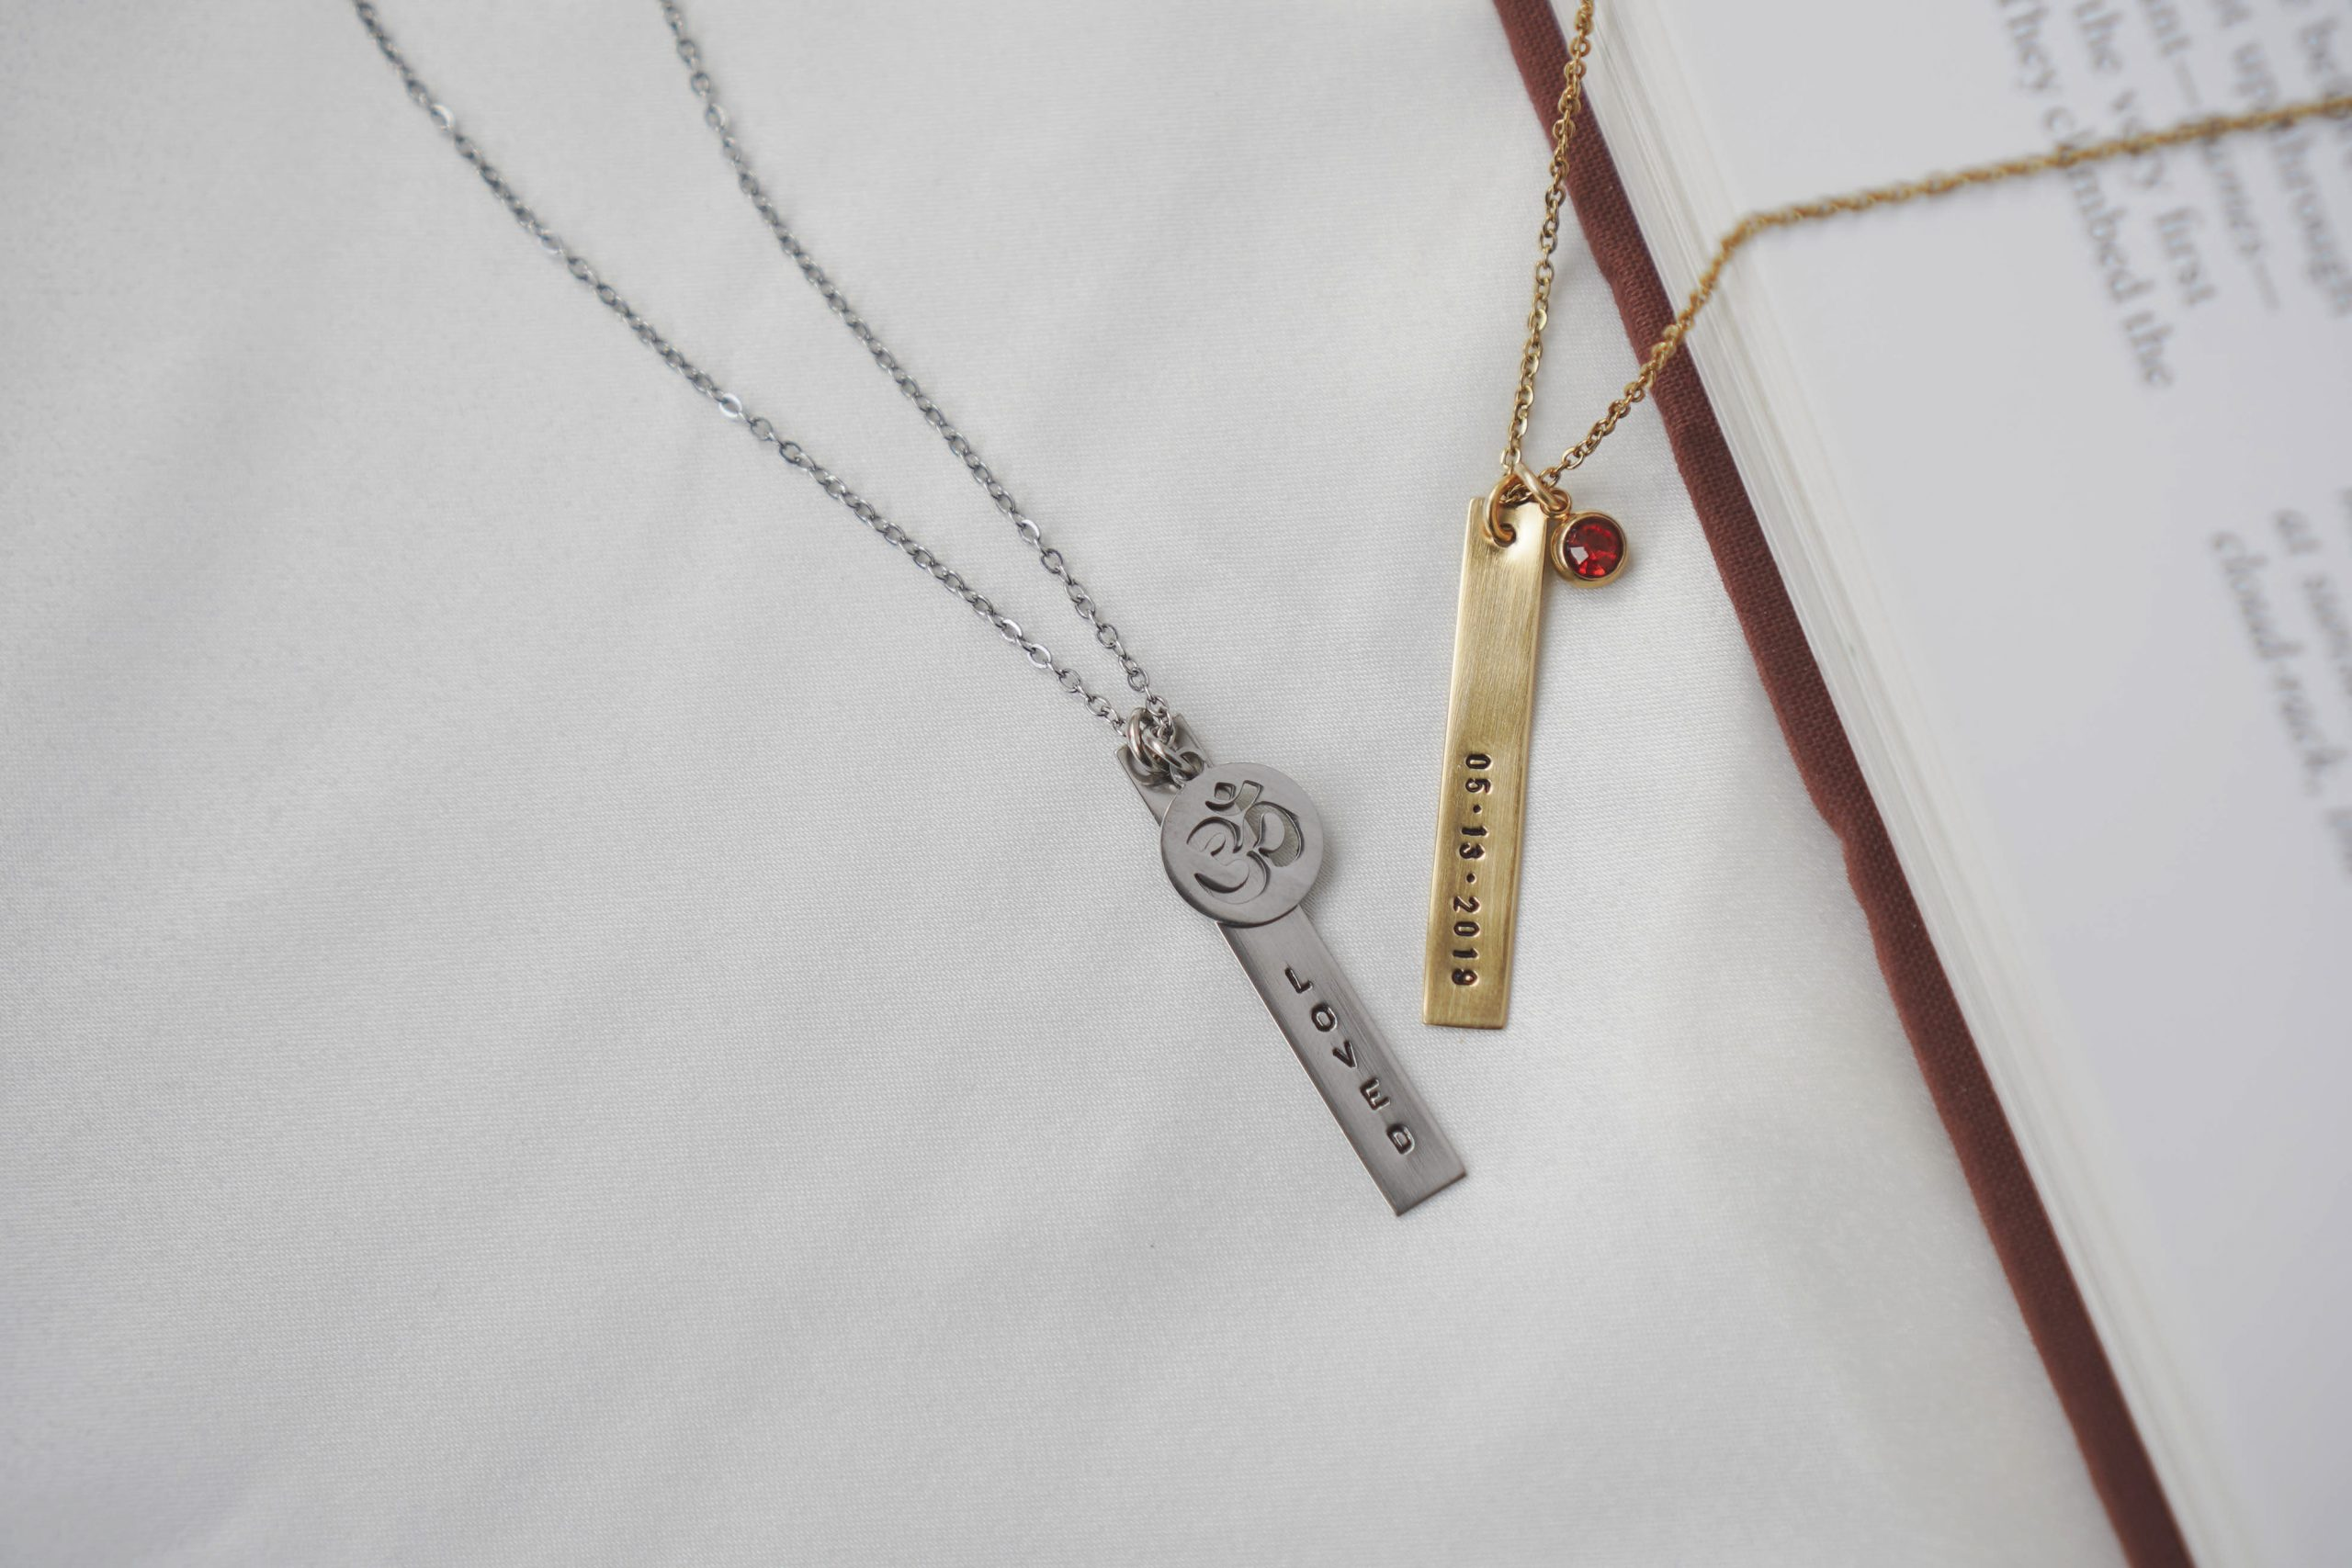 Catalina Bar Necklace in 18K Gold with Birthstone and White Gold with OM Charm